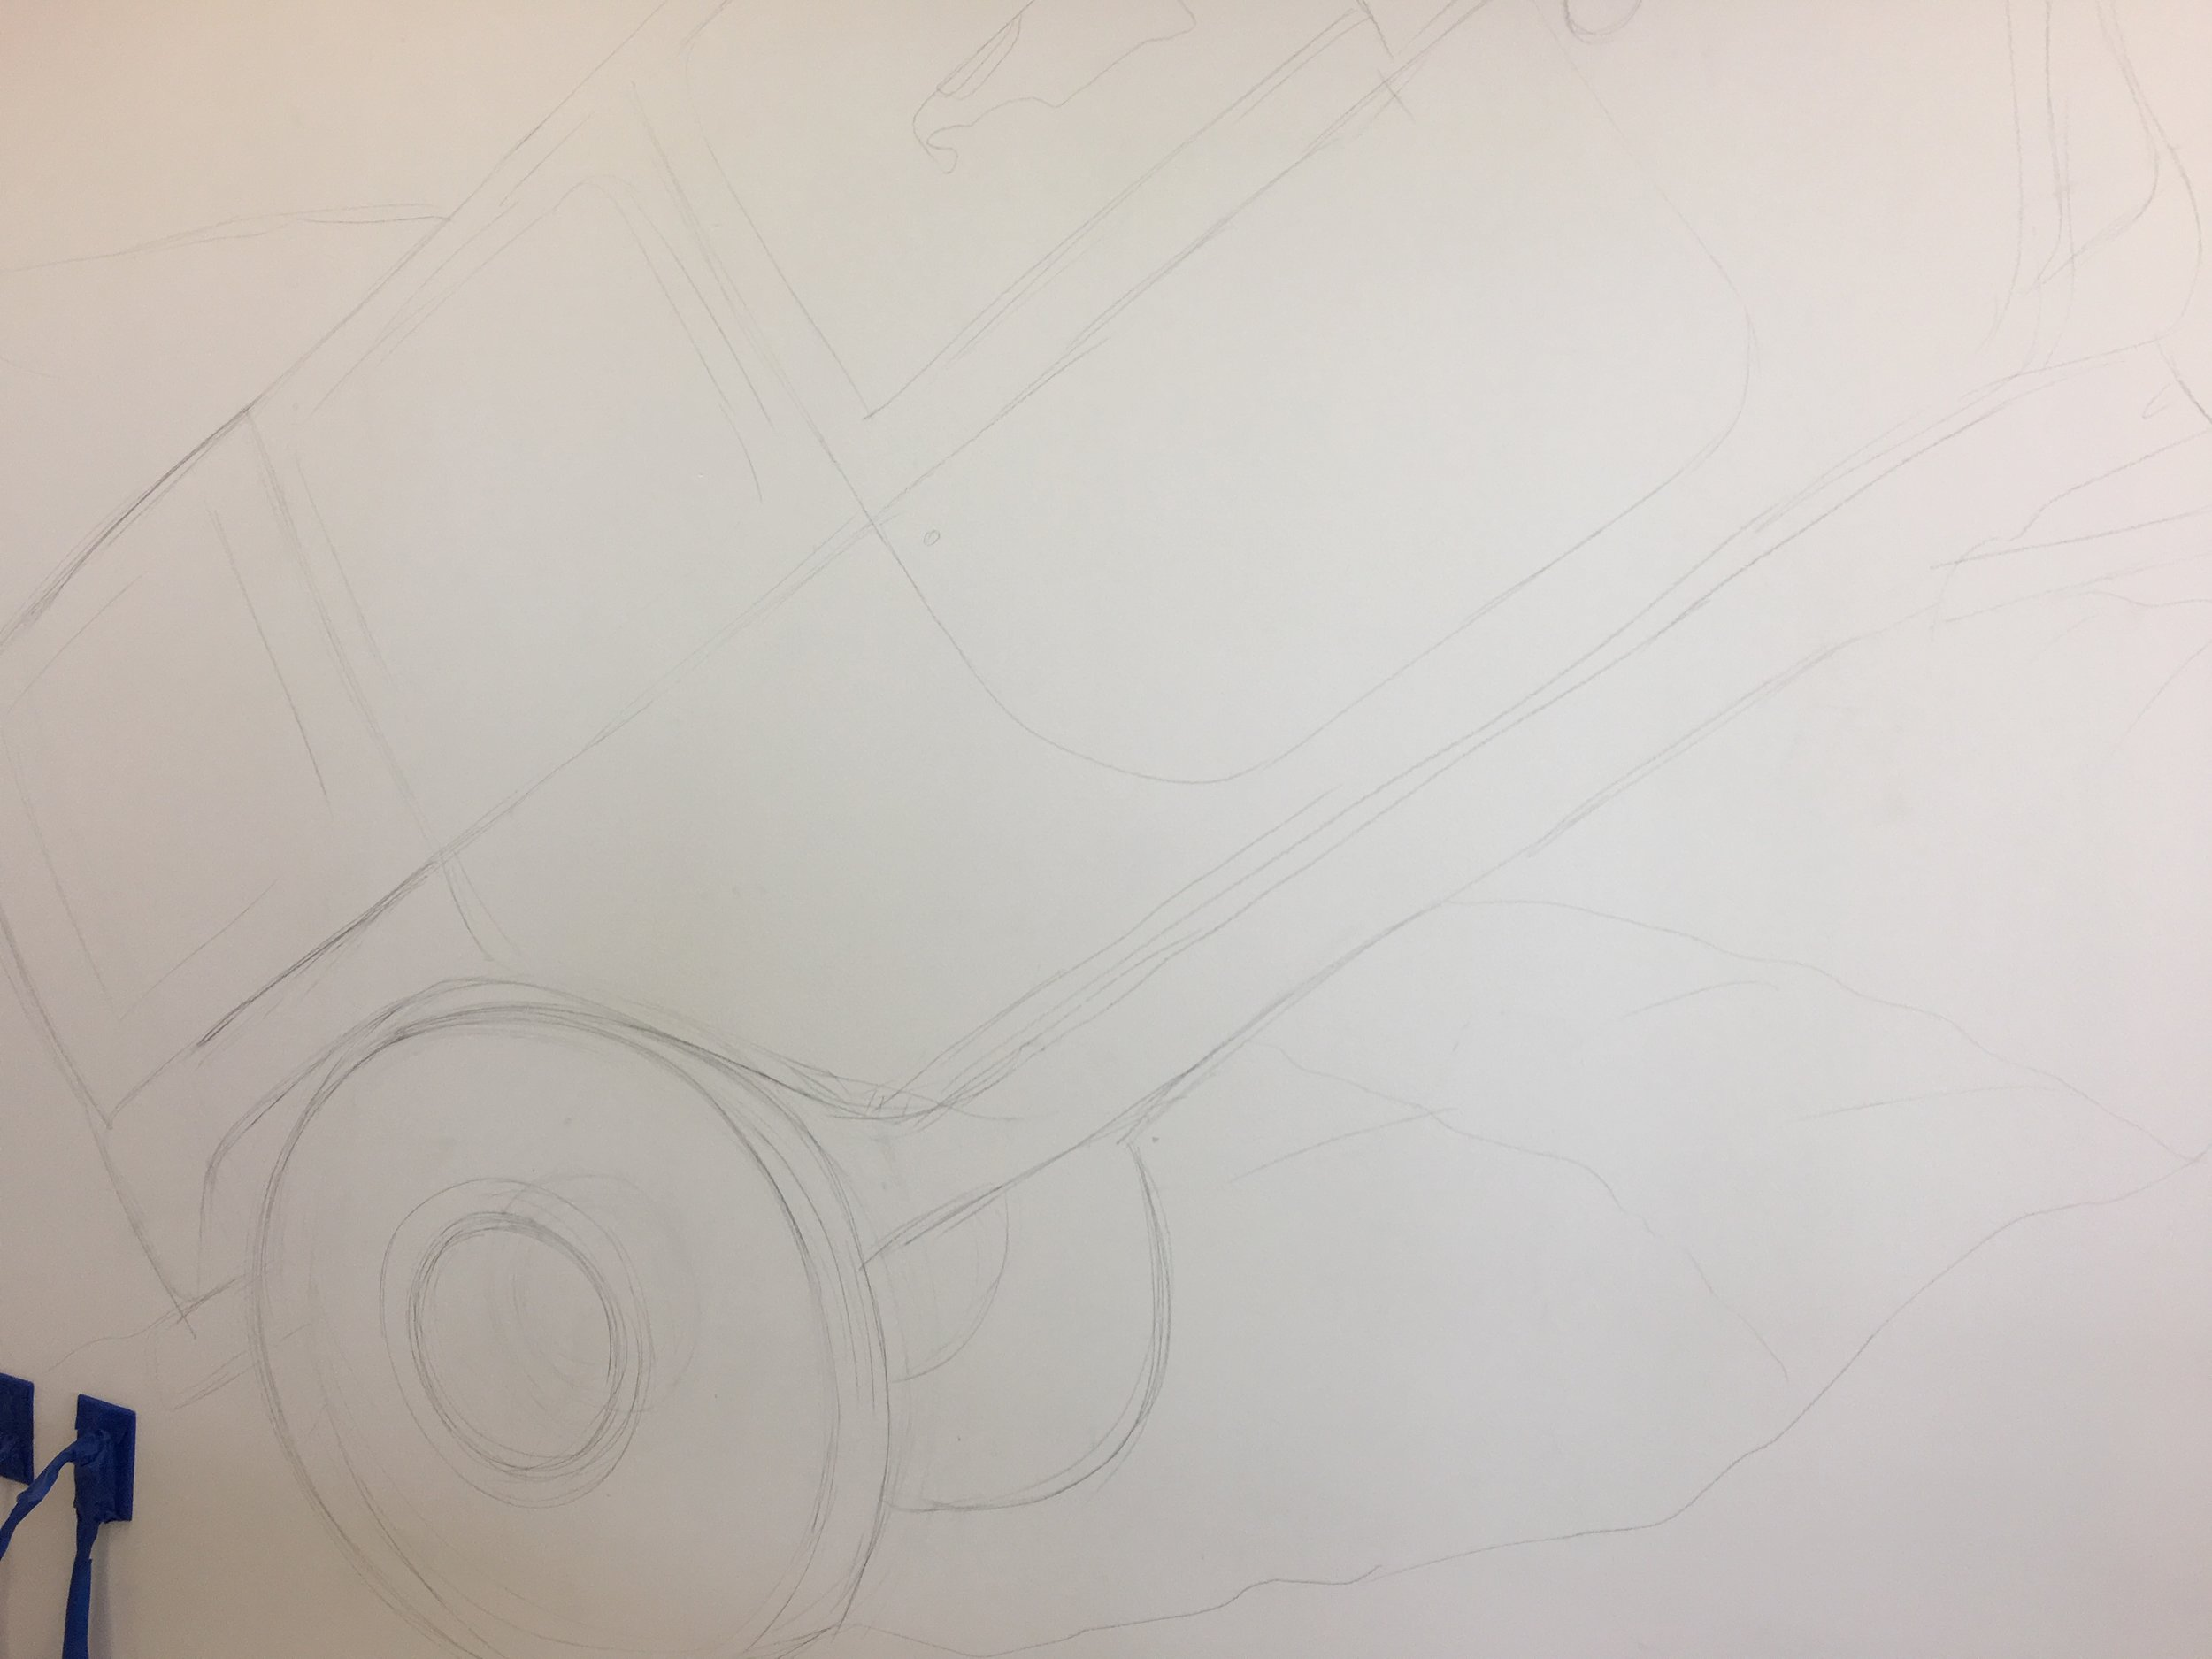 Penciling in the image.